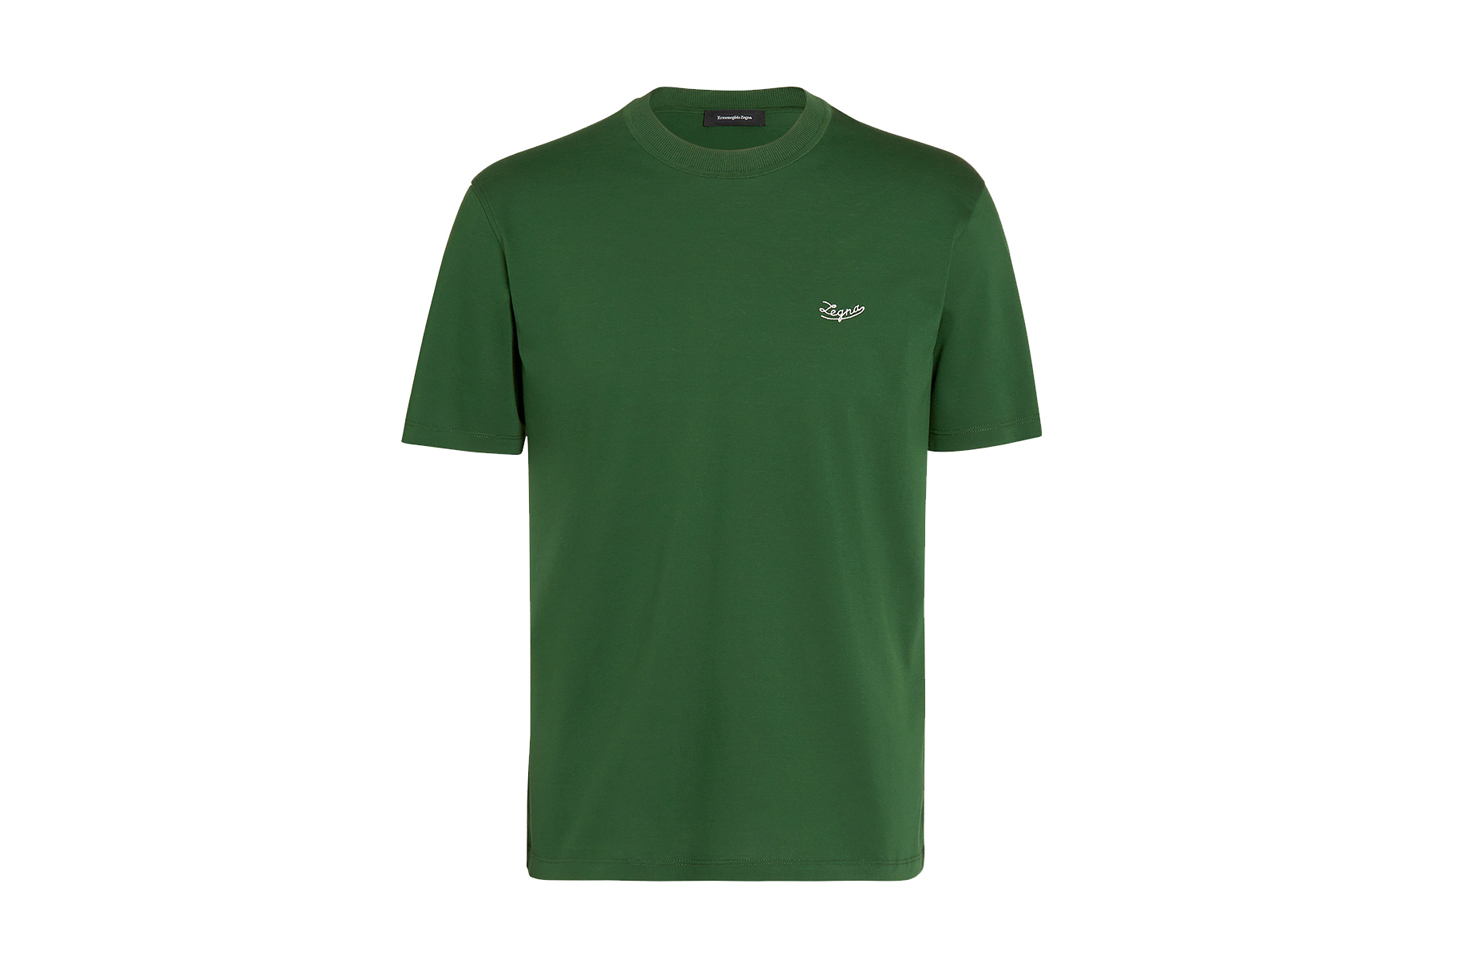 Jerseywear Cotton T-Shirt